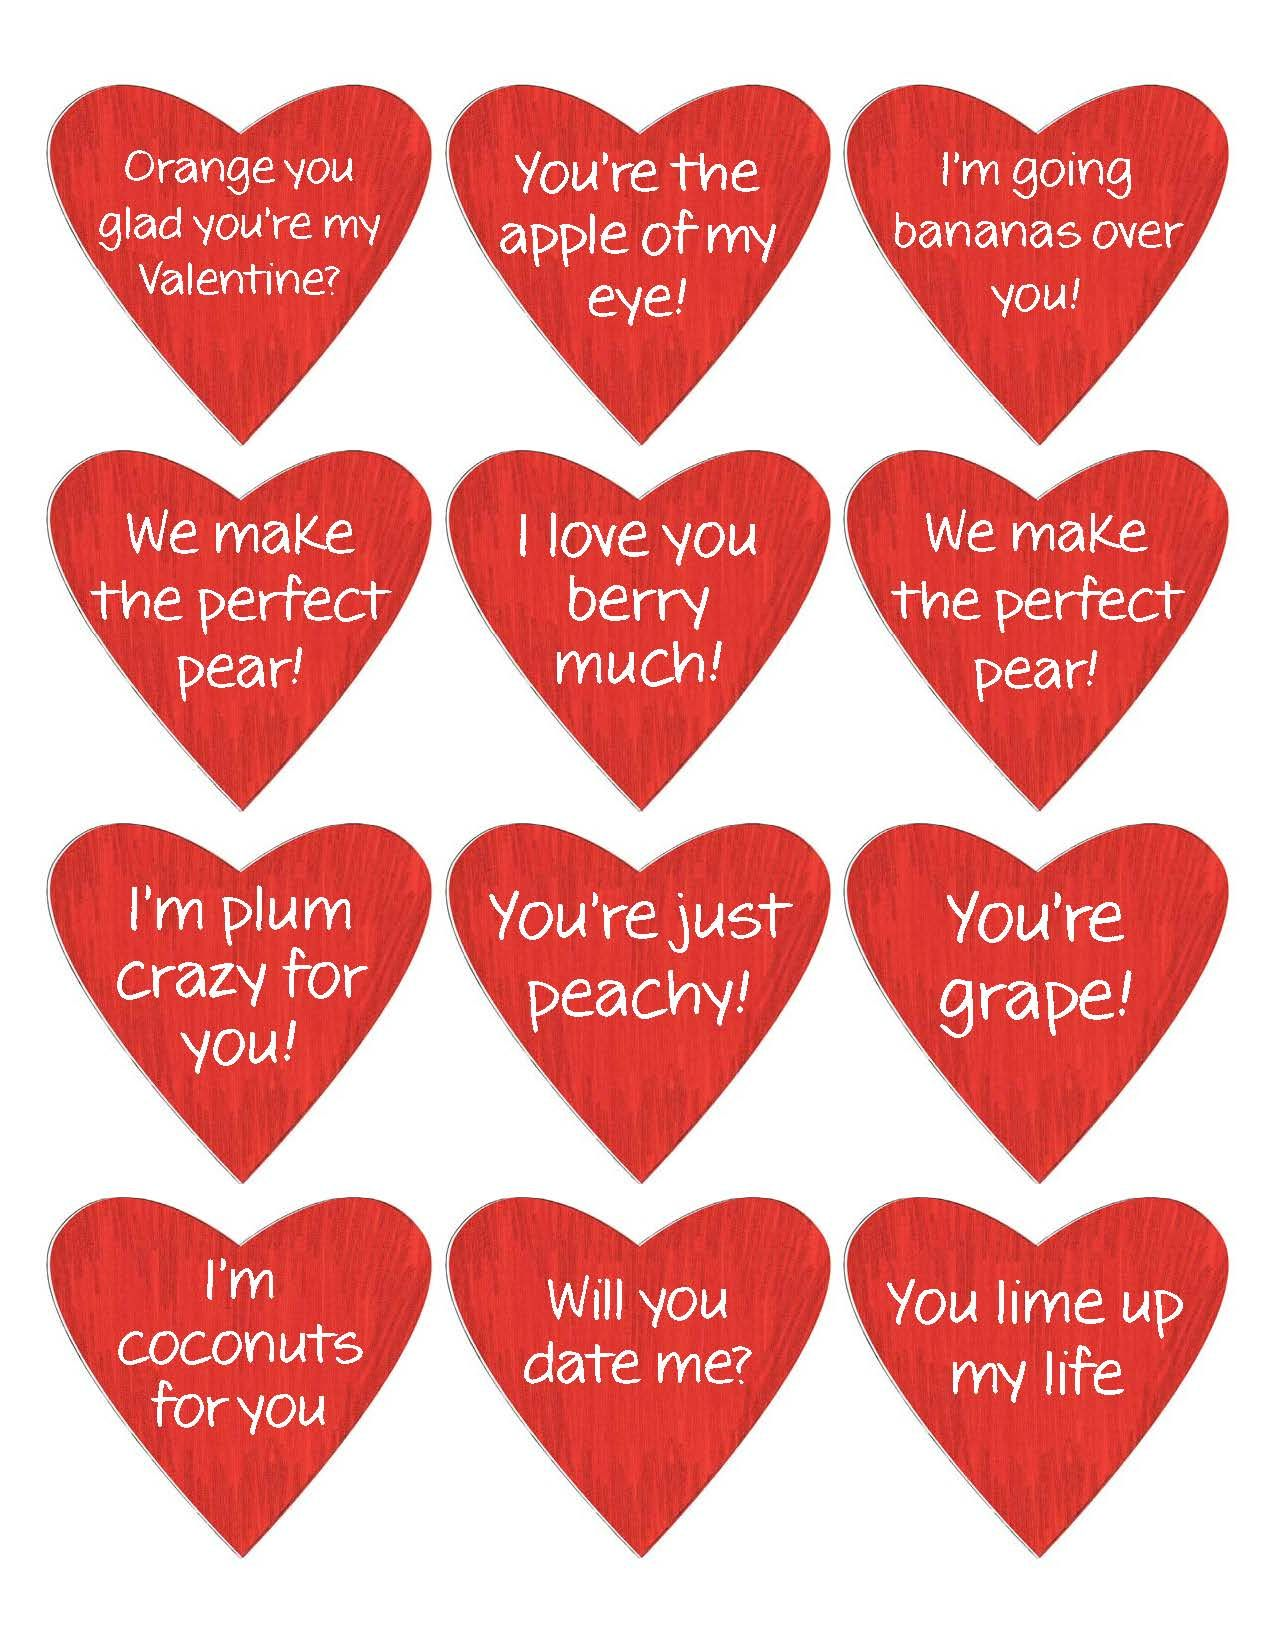 Valentine Fruit Basket Print As Stickers Or Tape On Fruit Arrange In A Basket With Ribbons A